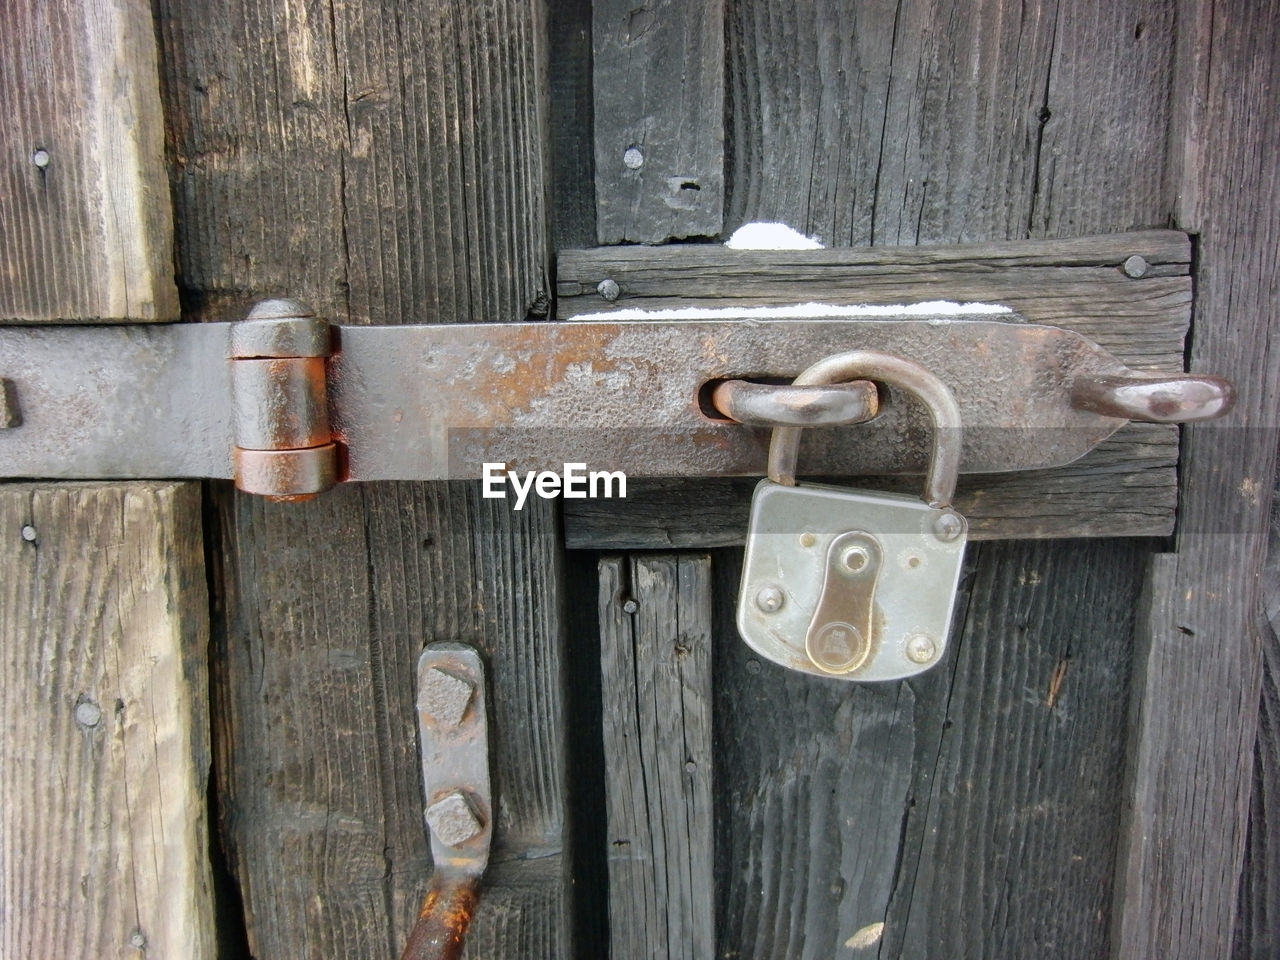 door, padlock, lock, security, safety, protection, wood - material, closed, metal, latch, outdoors, close-up, key, gate, no people, old-fashioned, doorway, day, rusty, hanging, privacy